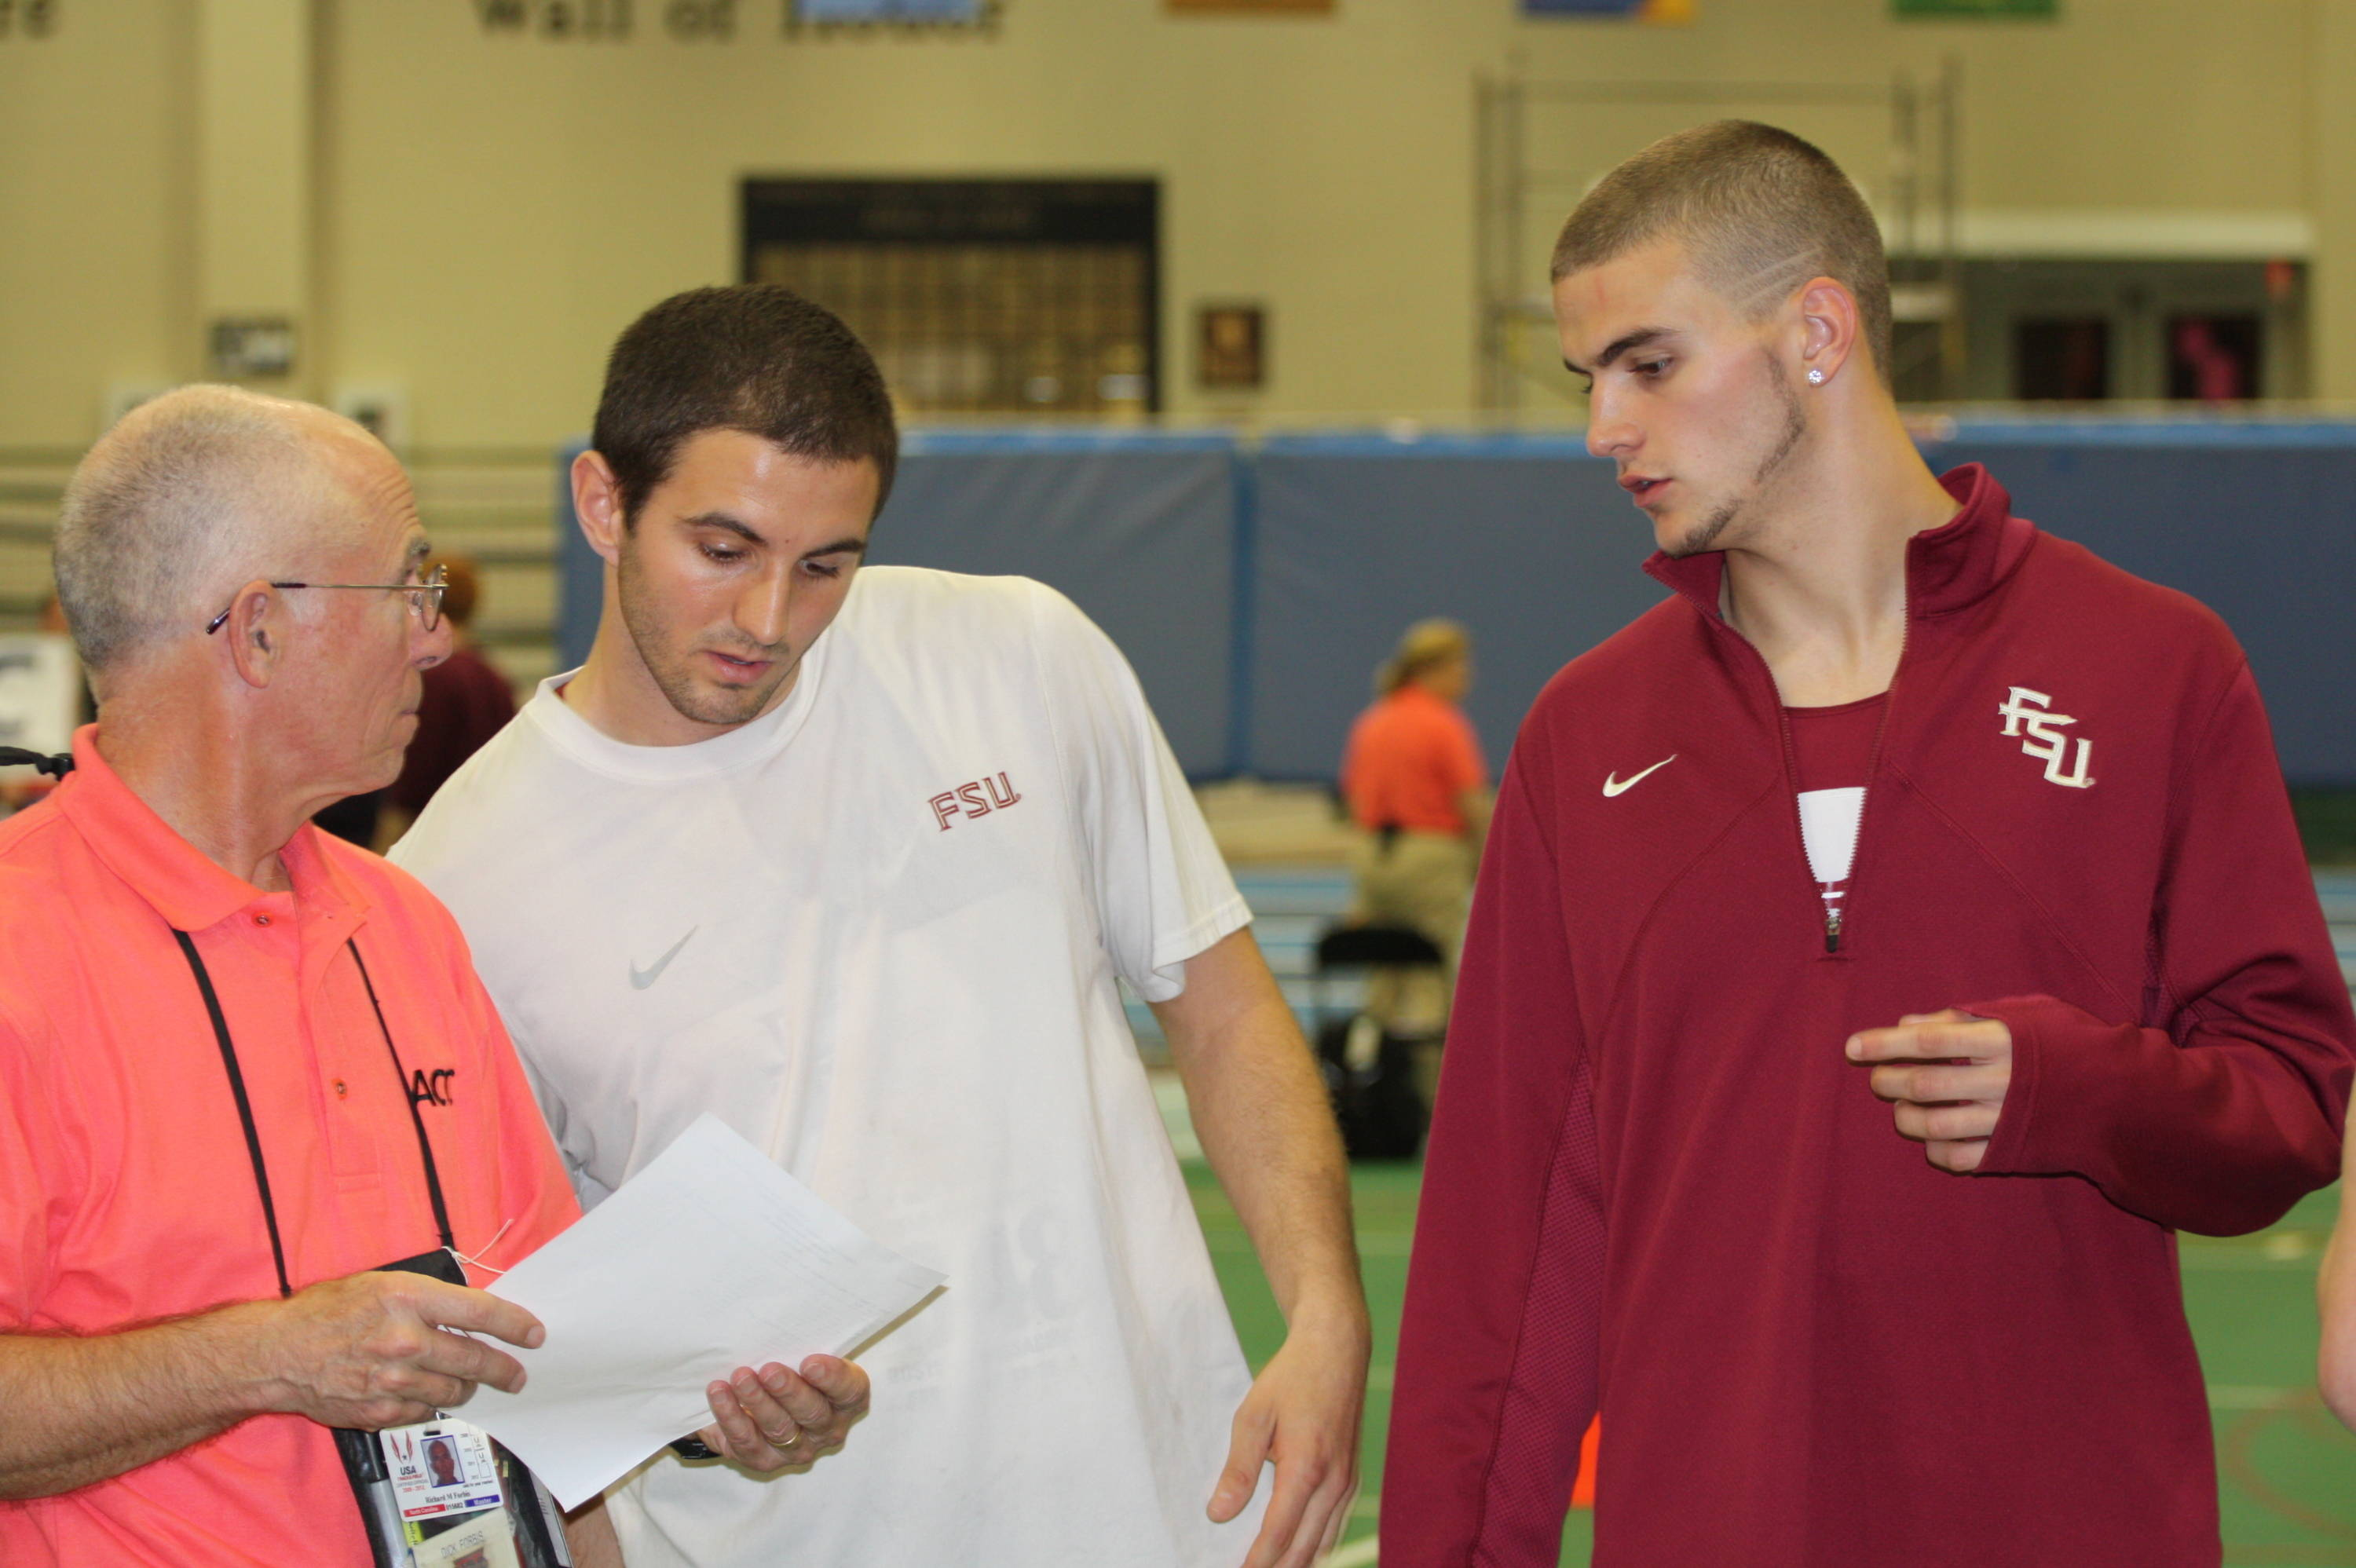 Seminoles Chris Snow and Daniel Salgado talk to an official before the 1000-meter final of the heptathlon.